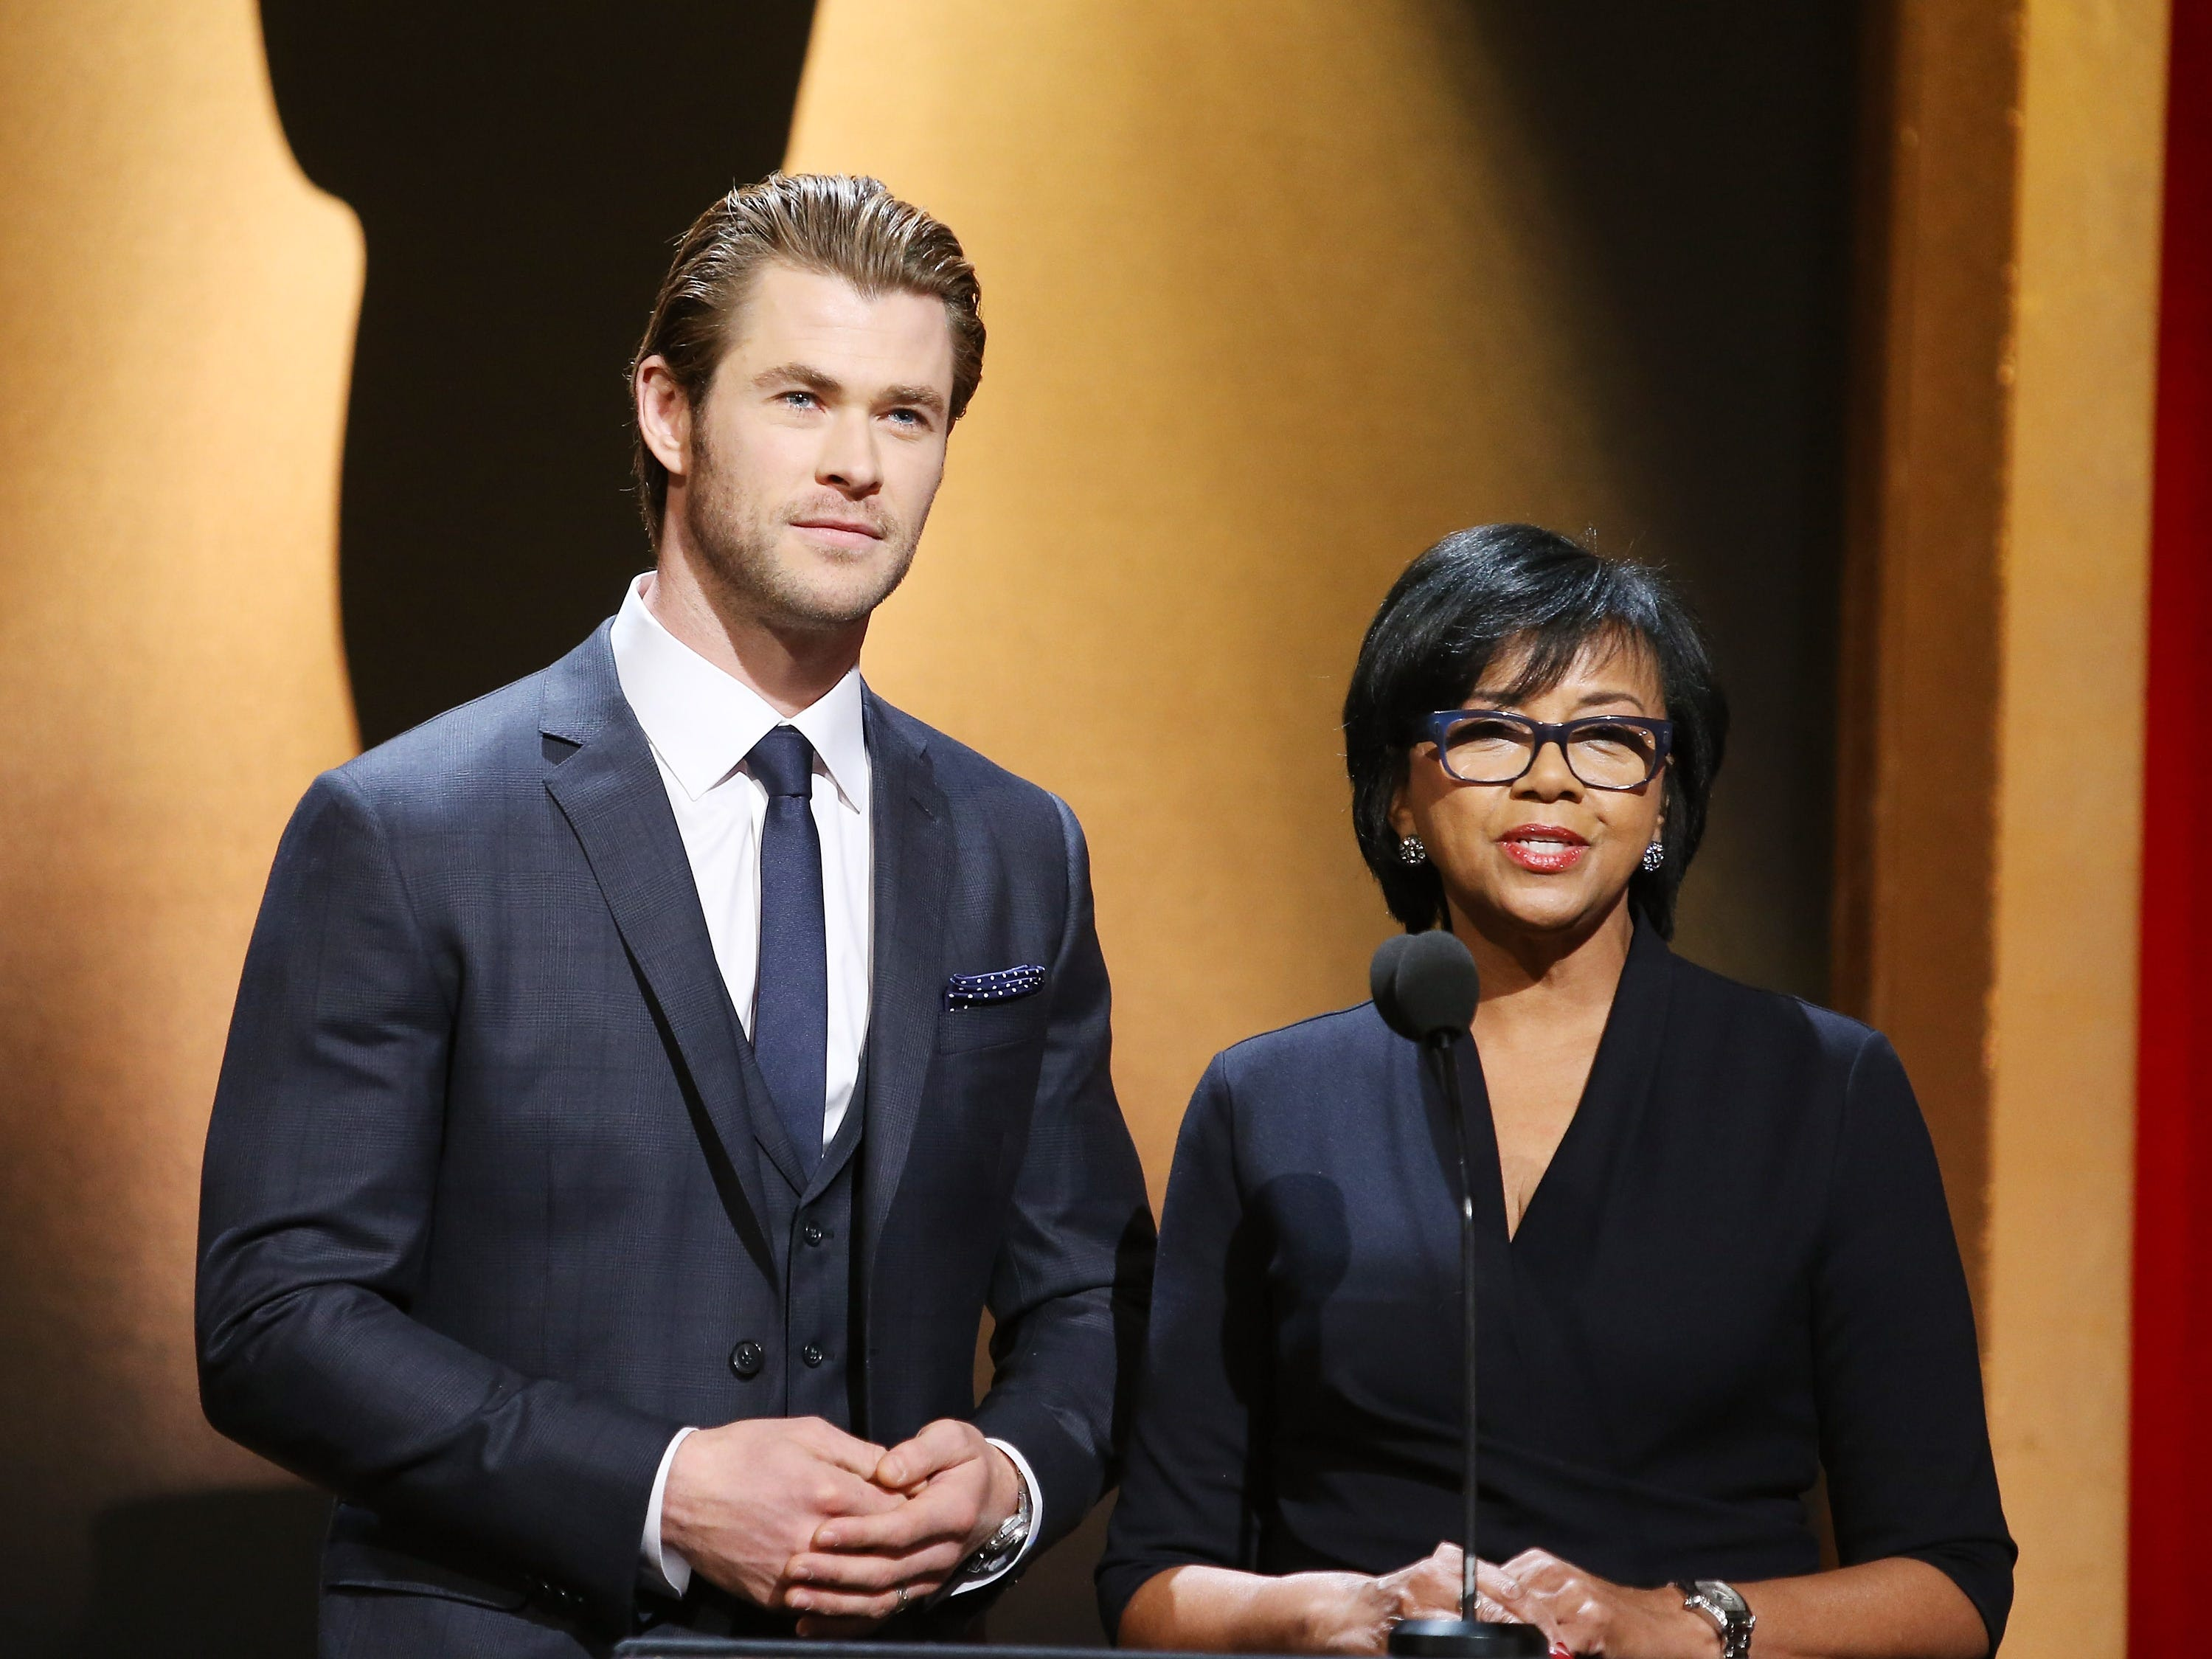 BEVERLY HILLS, CA - JANUARY 16:  Chris Hemsworth and Academy President Cheryl Boone Isaacs announce the nominees at the 86th Academy Awards nominations announcement held at AMPAS Samuel Goldwyn Theater on January 16, 2014 in Beverly Hills, California.  (Photo by Michael Tran/FilmMagic) ORG XMIT: 463283781 ORIG FILE ID: 462955629